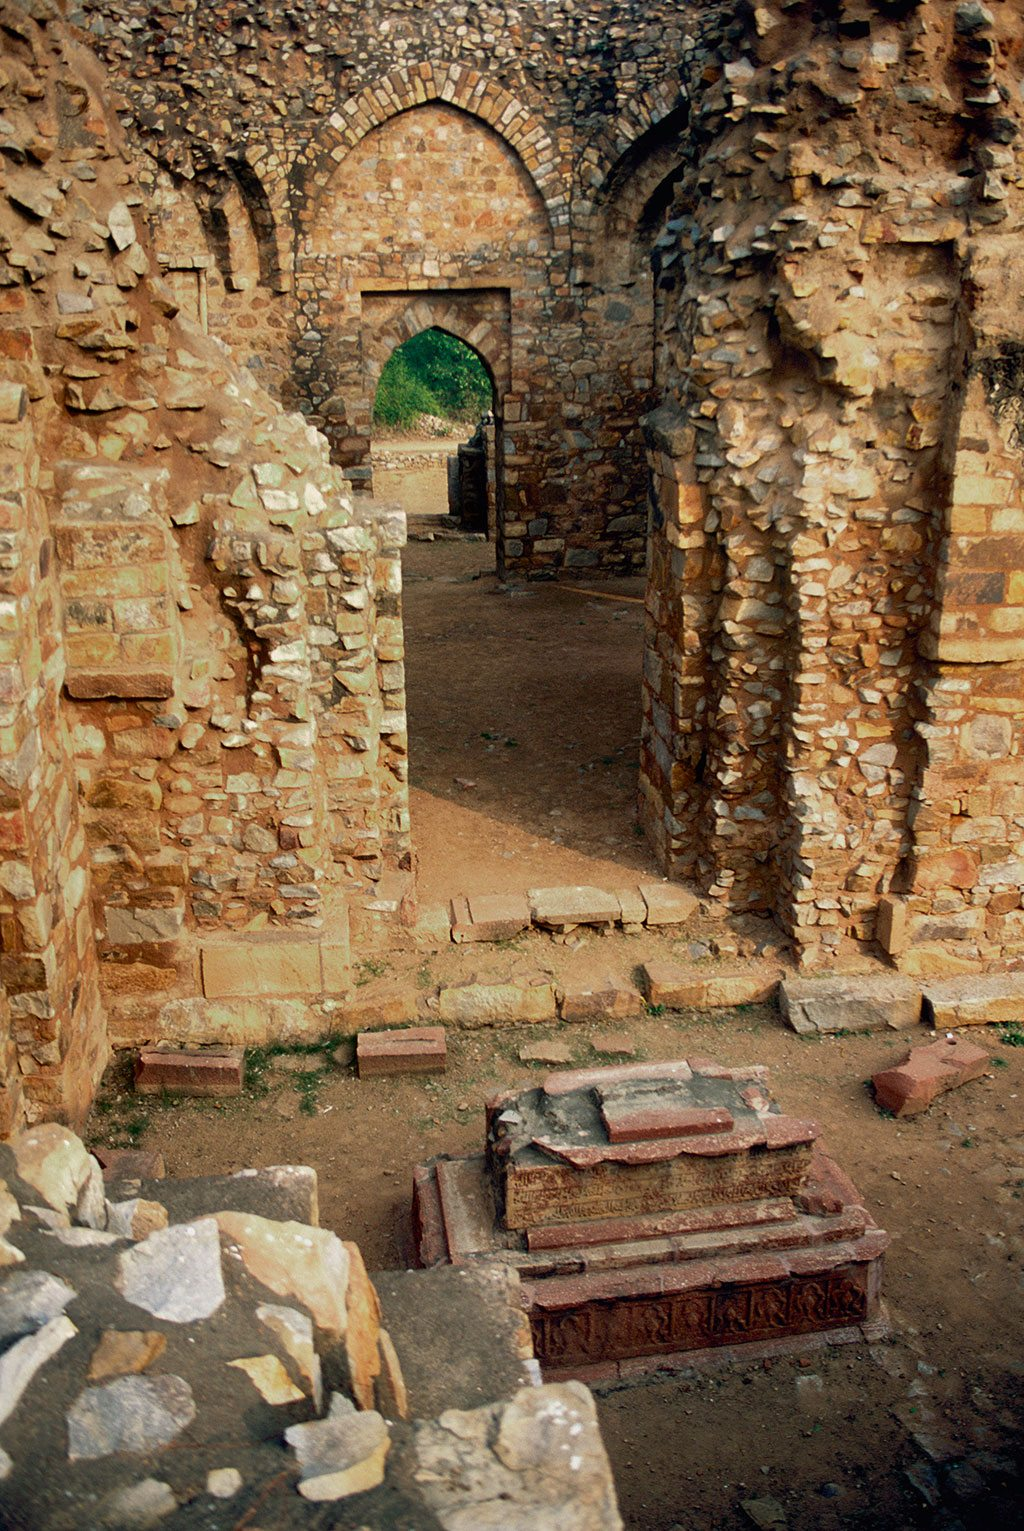 Balban's tomb is remarkably well preserved despite being open to the skies. Photo: Ashoo Sharma/Indiapicture/Dinodia